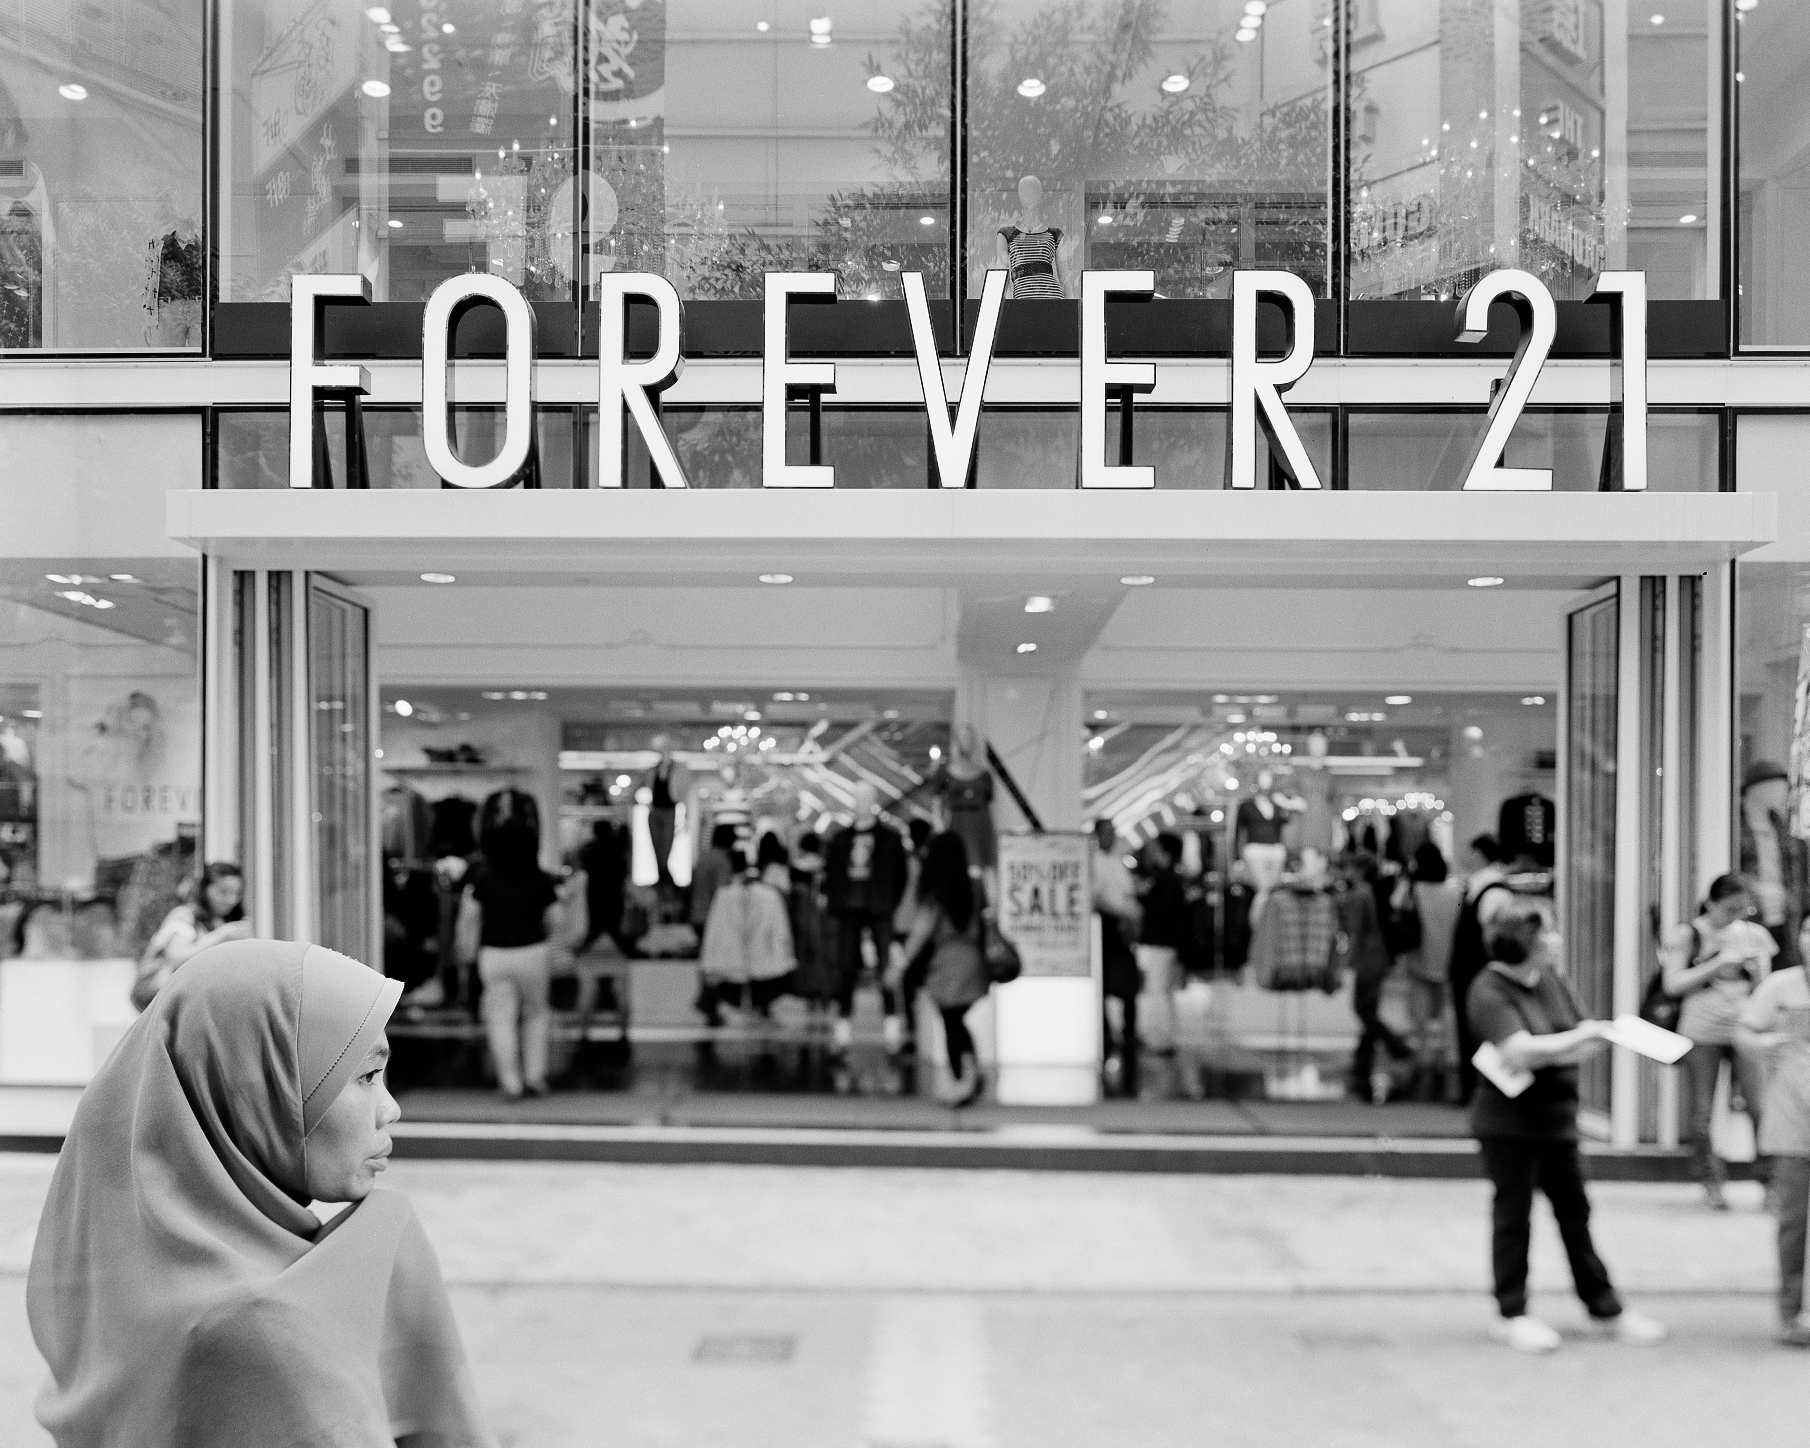 Everyone Wants To Be Forever 21, Hong Kong (2012)